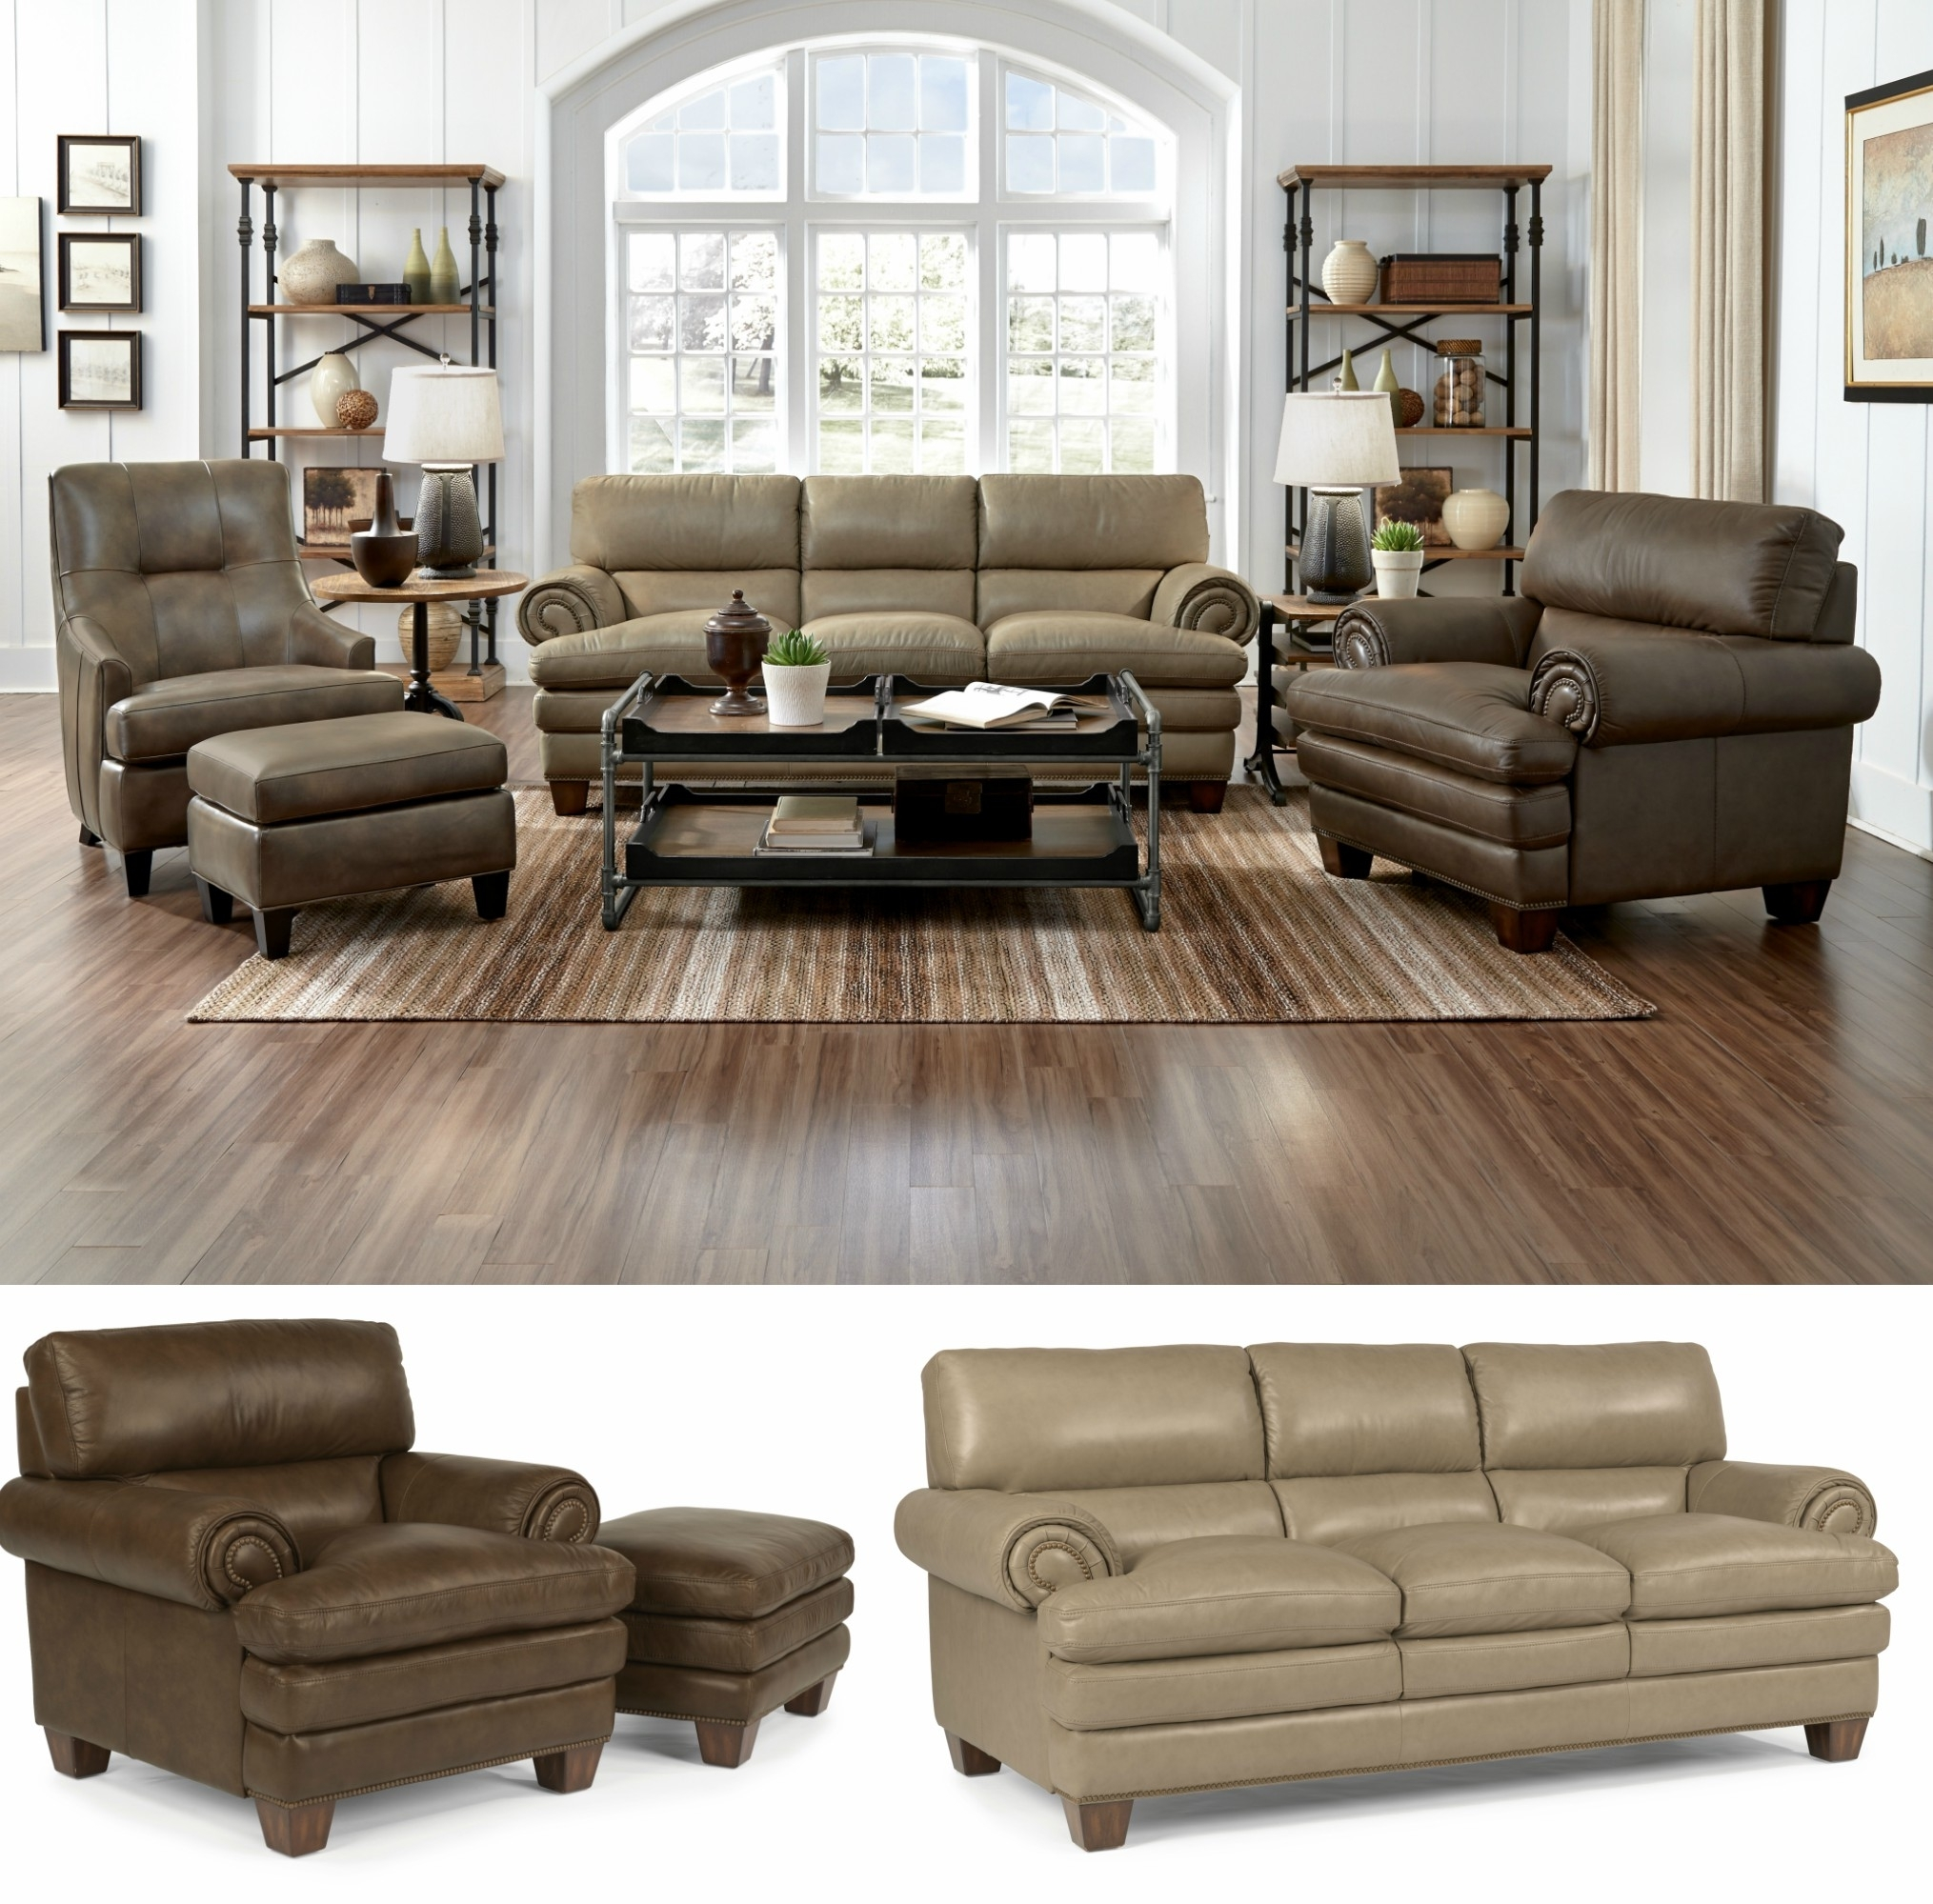 Cozy Overstuffed Leather Sofa Brown With Marvellous Decoration Camel With Camel Colored Sectional Sofas (Image 7 of 10)